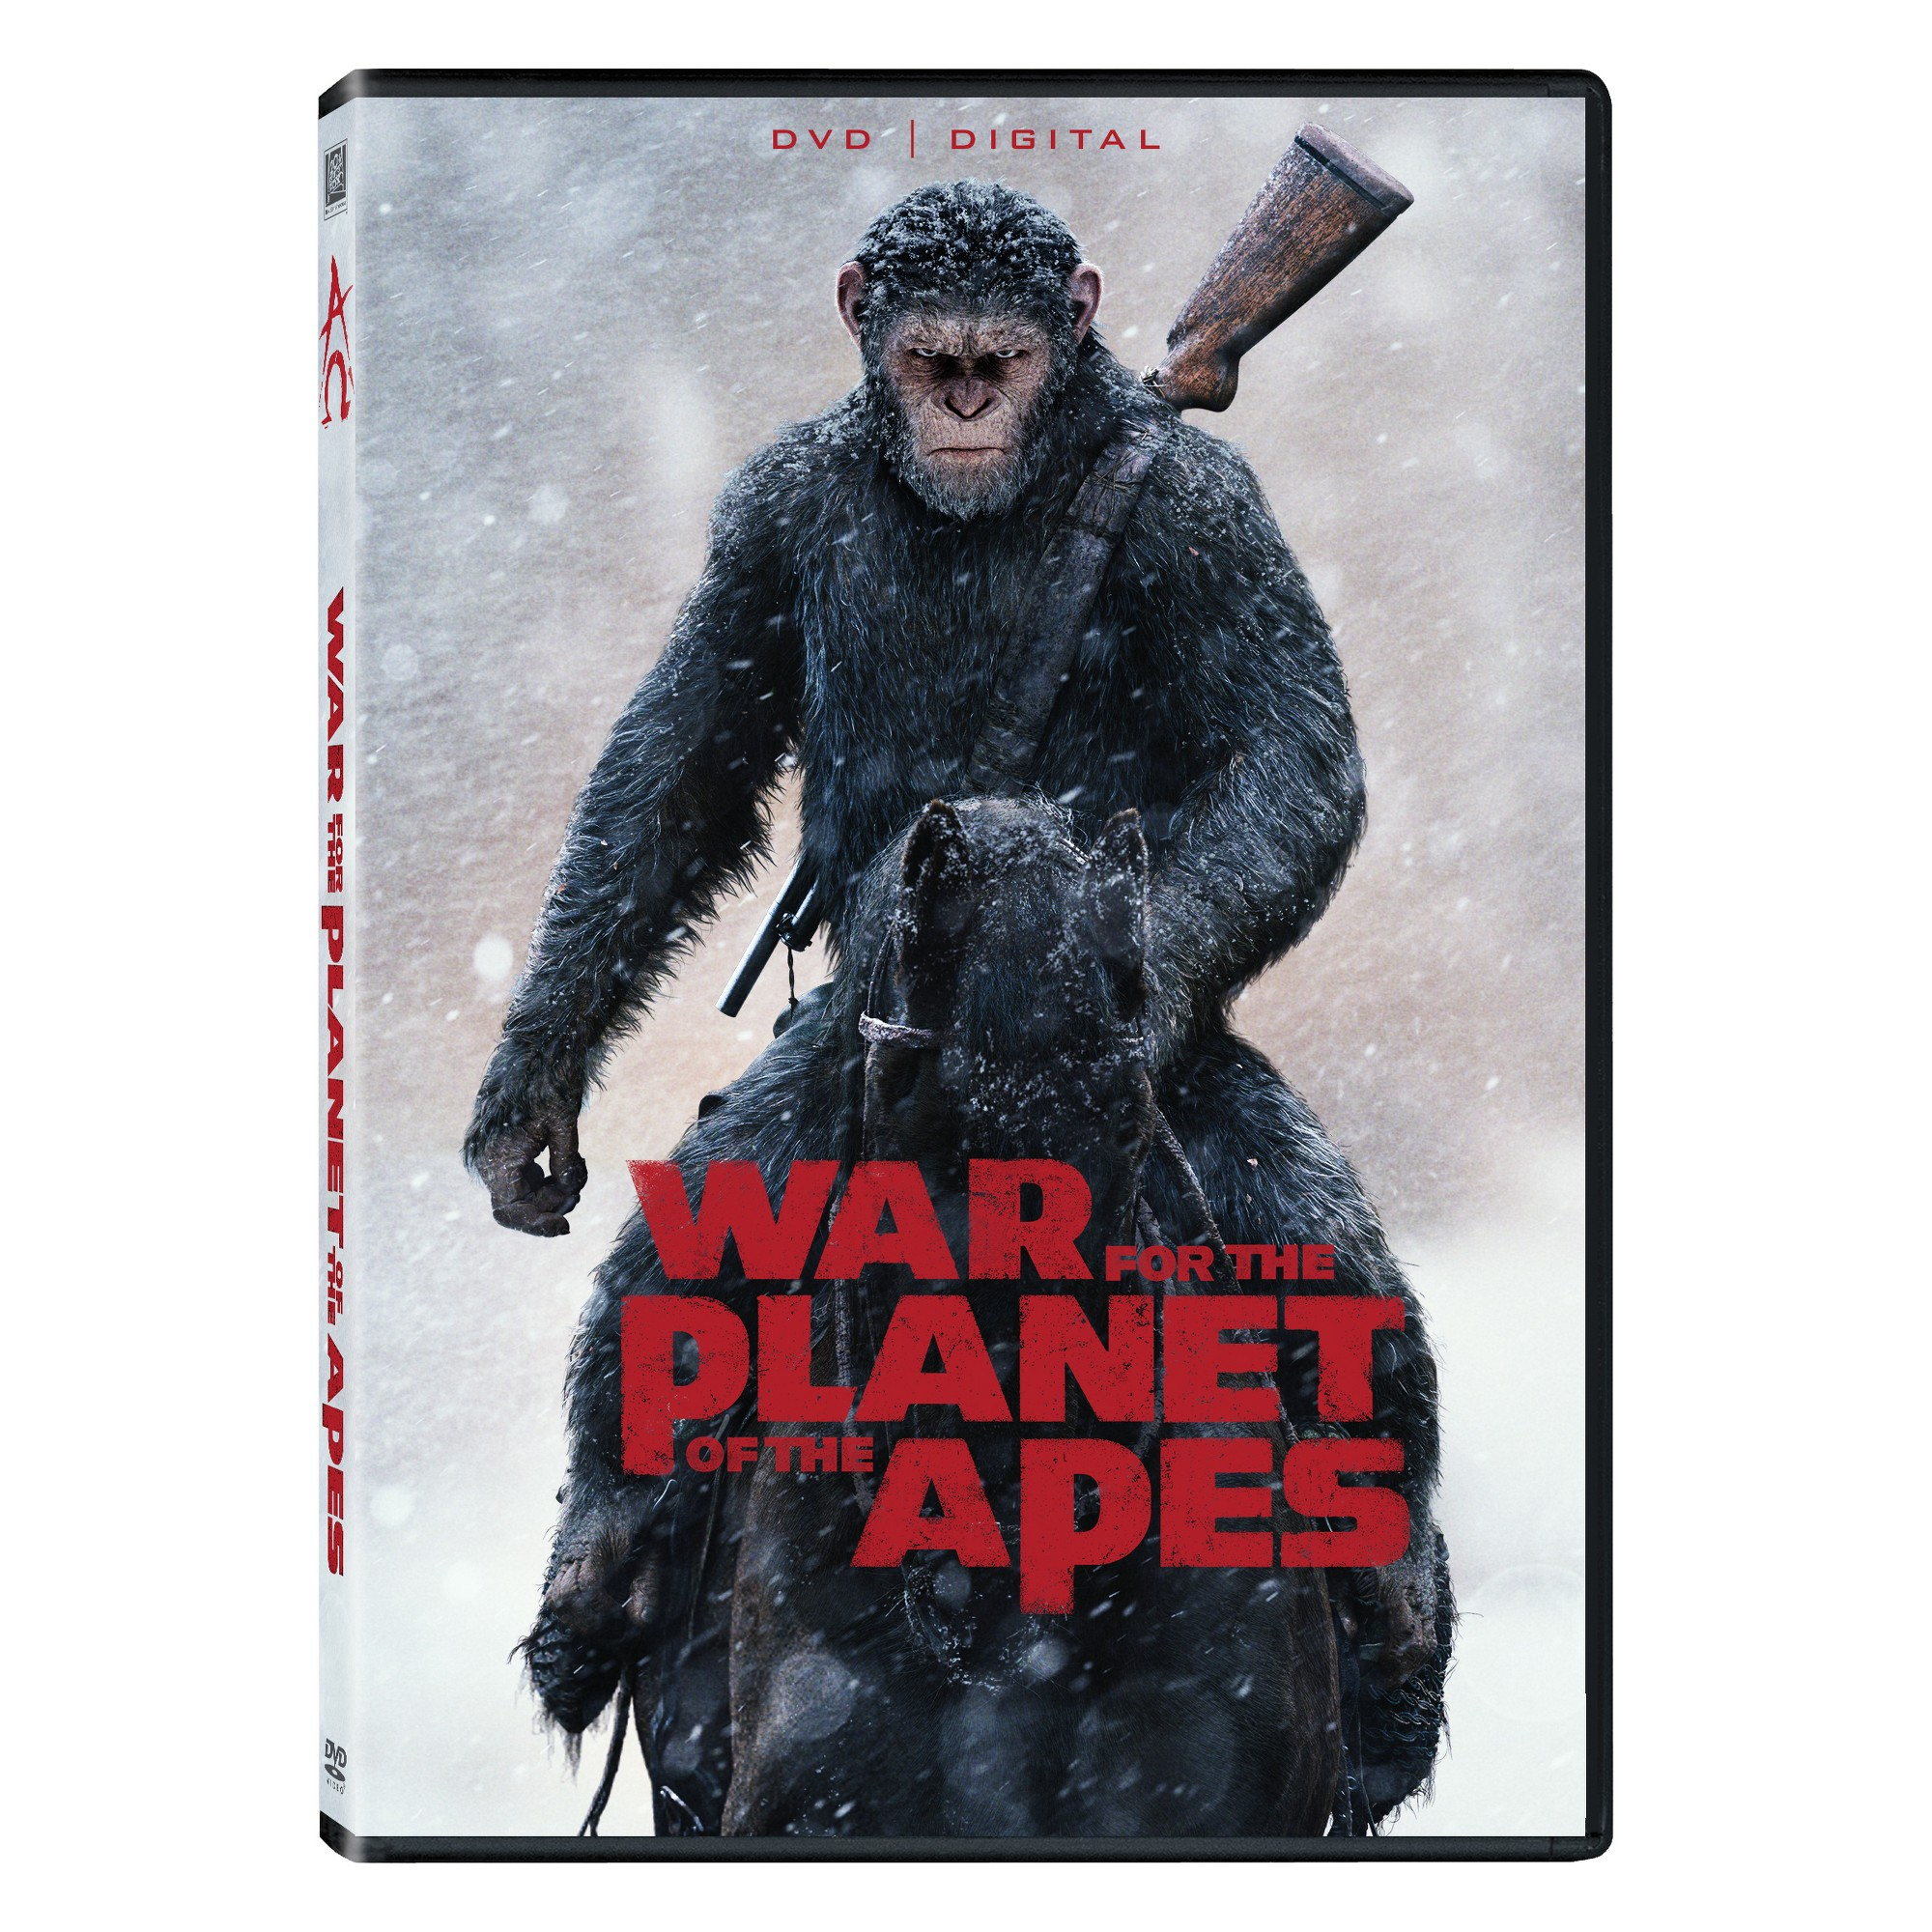 War For The Planet Of The Apes Dvd Digital In 2021 Planet Of The Apes Free Movies Online Apes